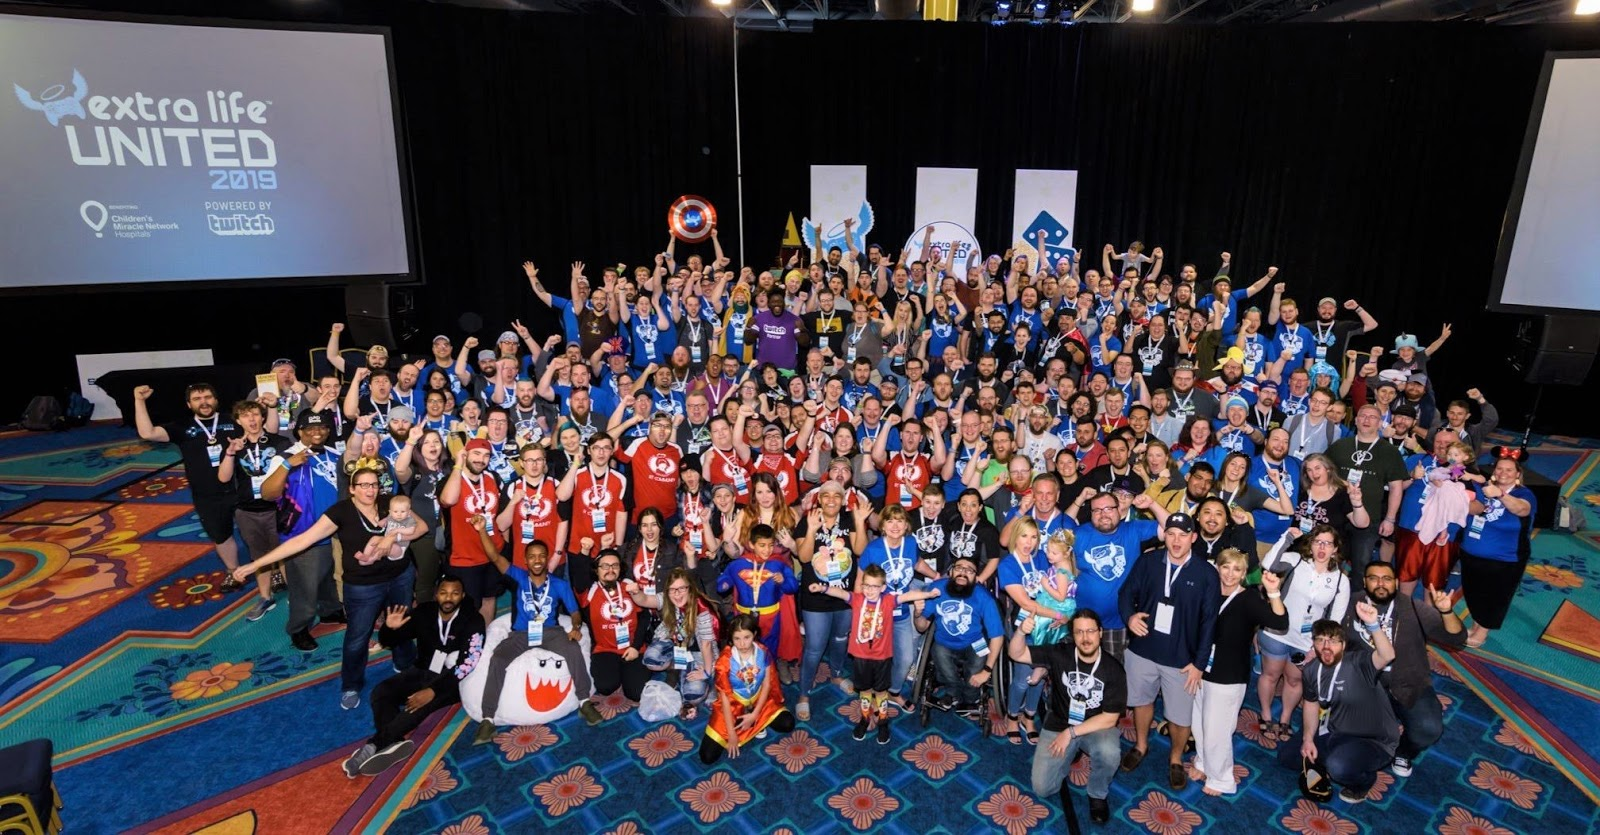 Dominic's journey with AML: Extra Life United 2019: Unicorns and hugs